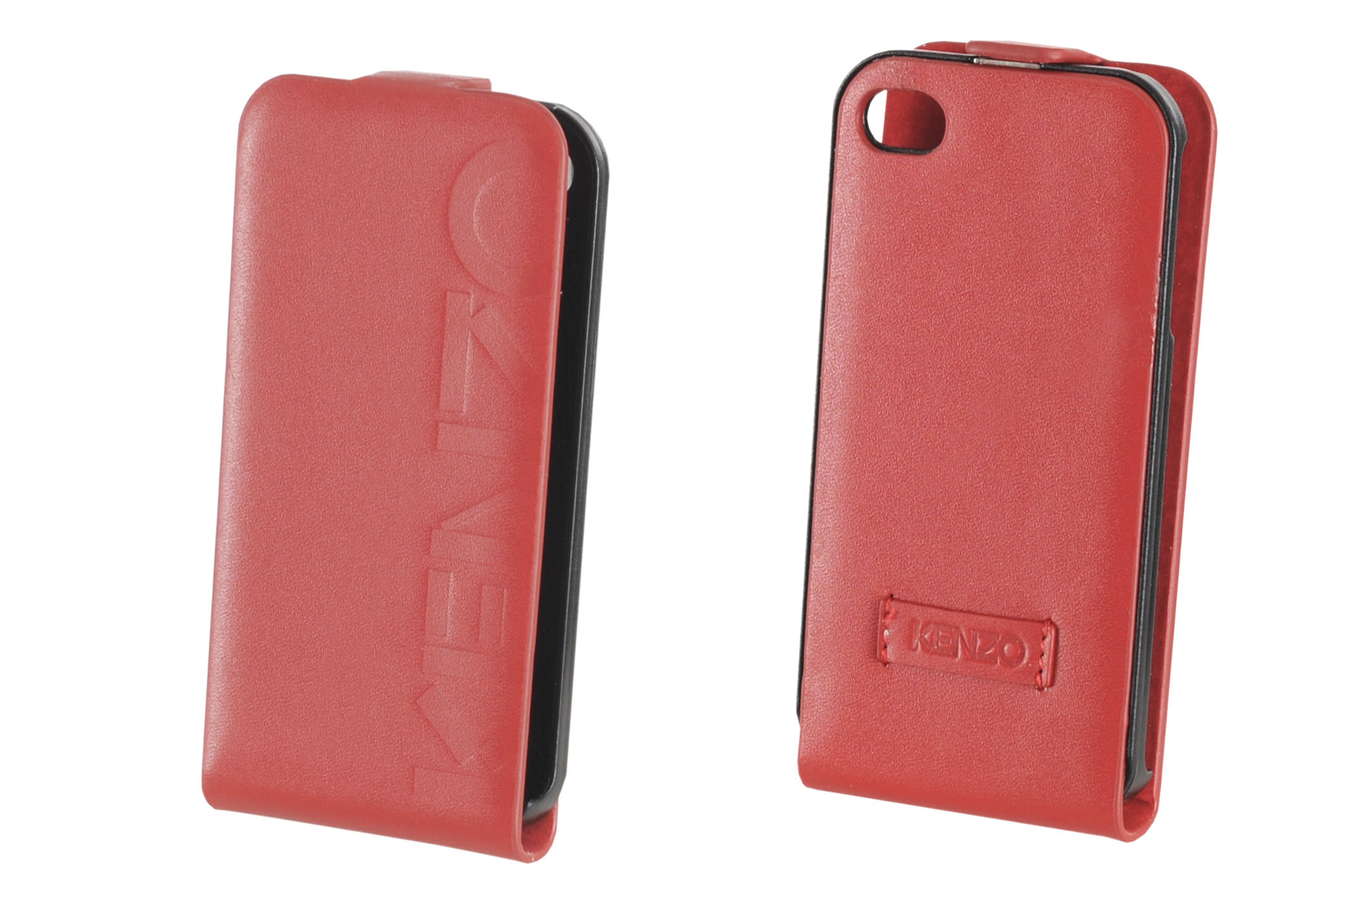 Housse pour iphone kenzo etui cuir iphone 4 4s 1329294 for Iphone housse cuir